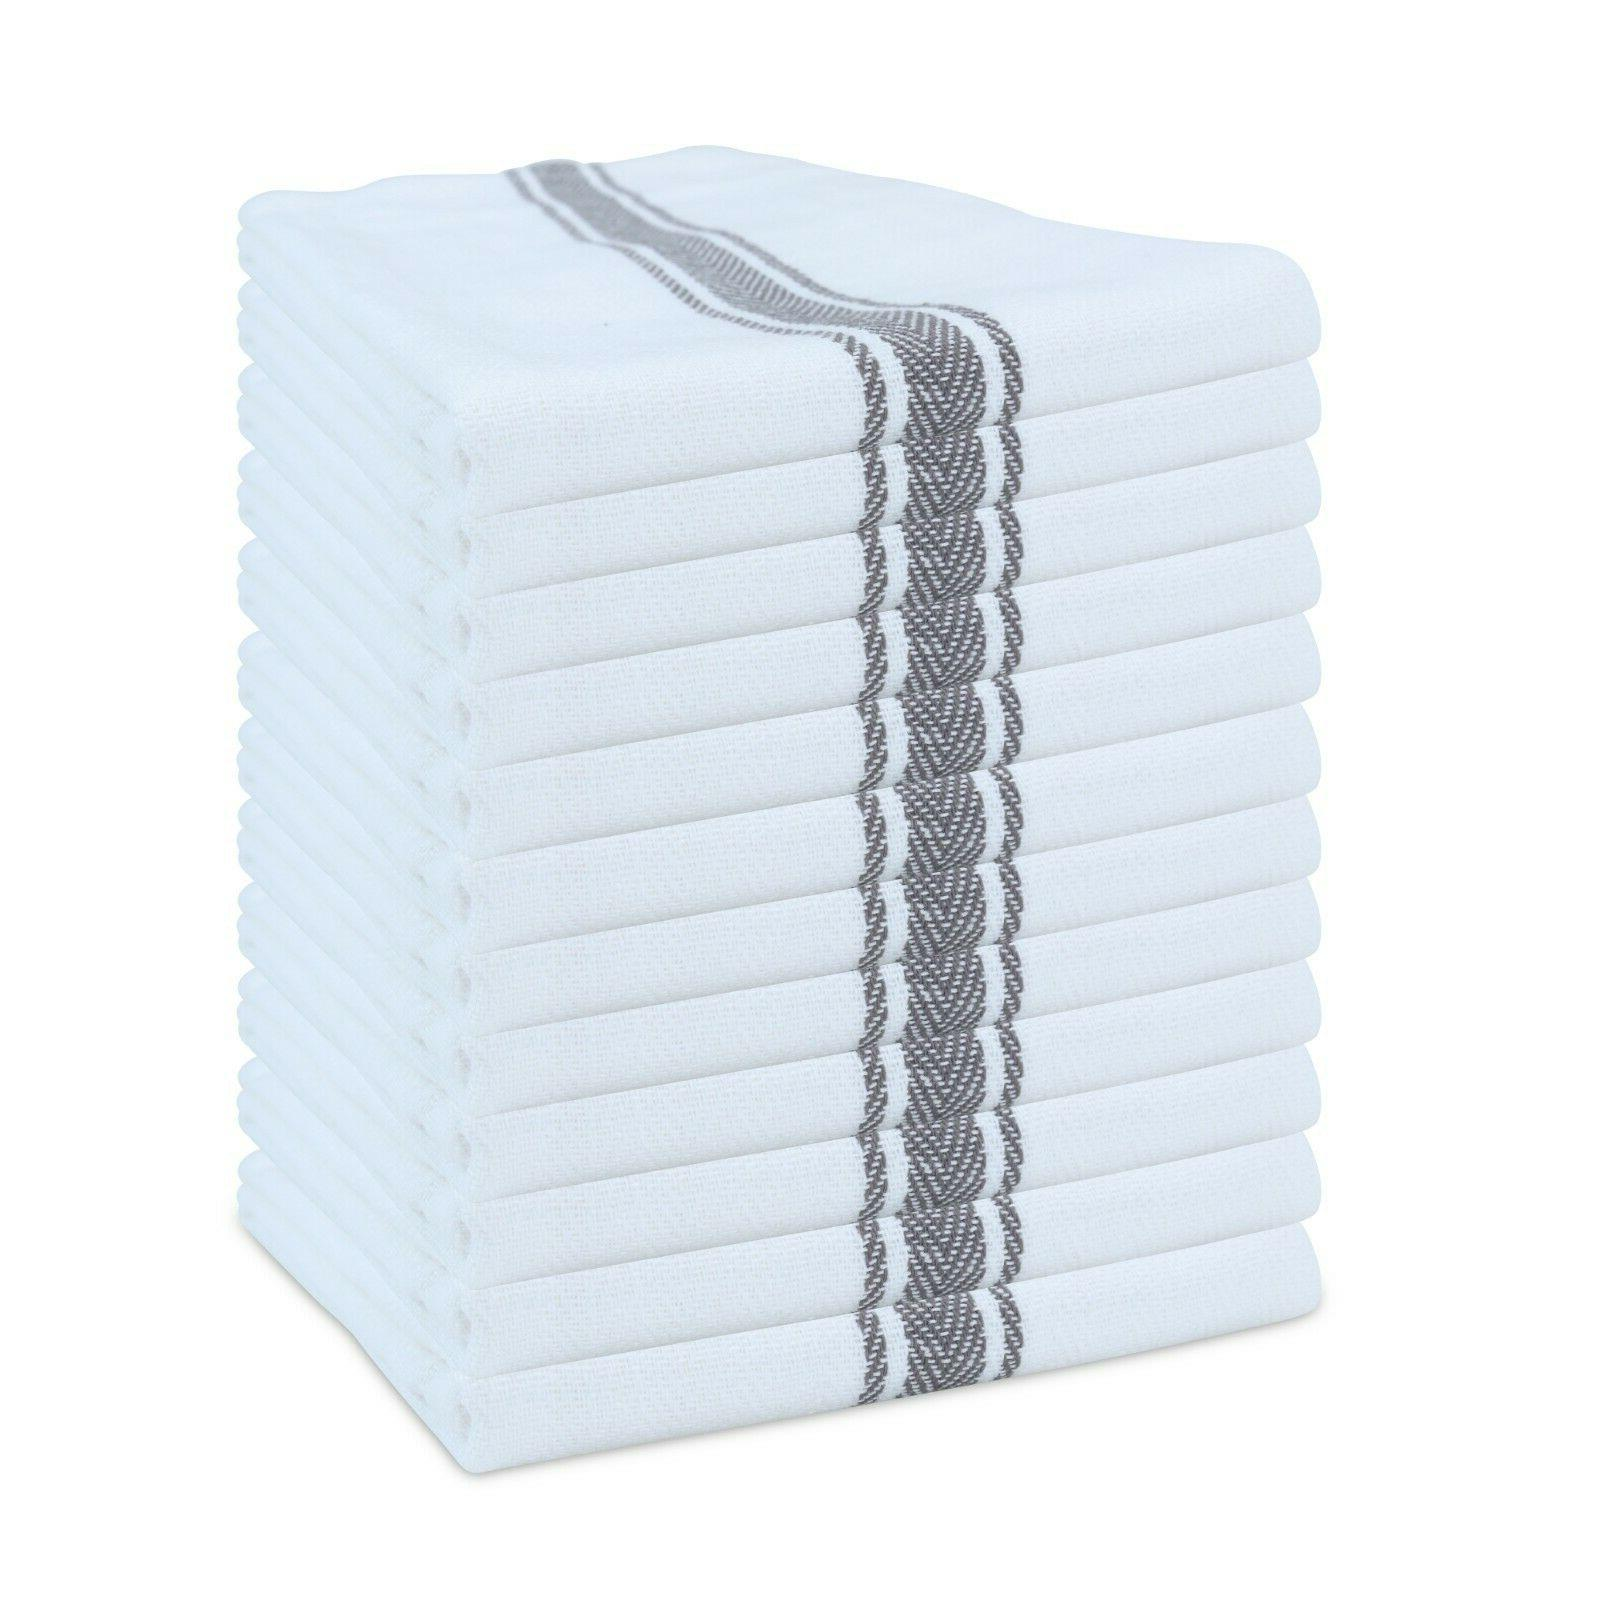 12 Pack of Striped Kitchen Tea Towels Dish Towels 15 x Color